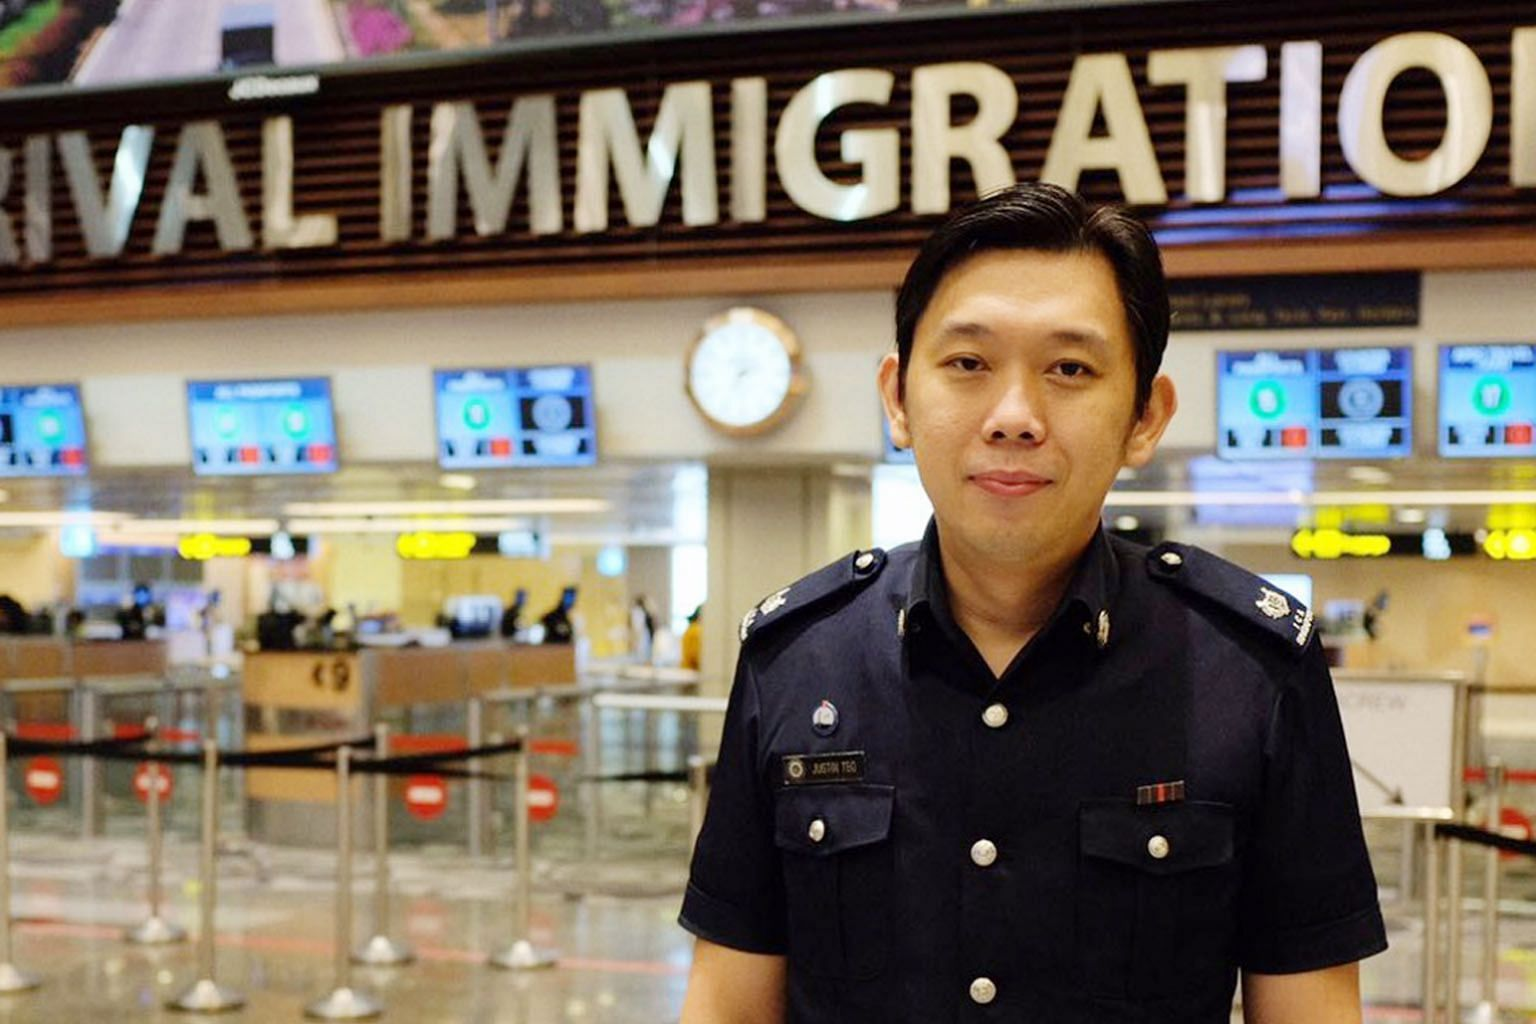 Assistant Superintendent Justin Teo Kok Quan helped a Thai tourist who was having labour pains with immigration clearance. He also contacted the medical team at at Changi Airport.